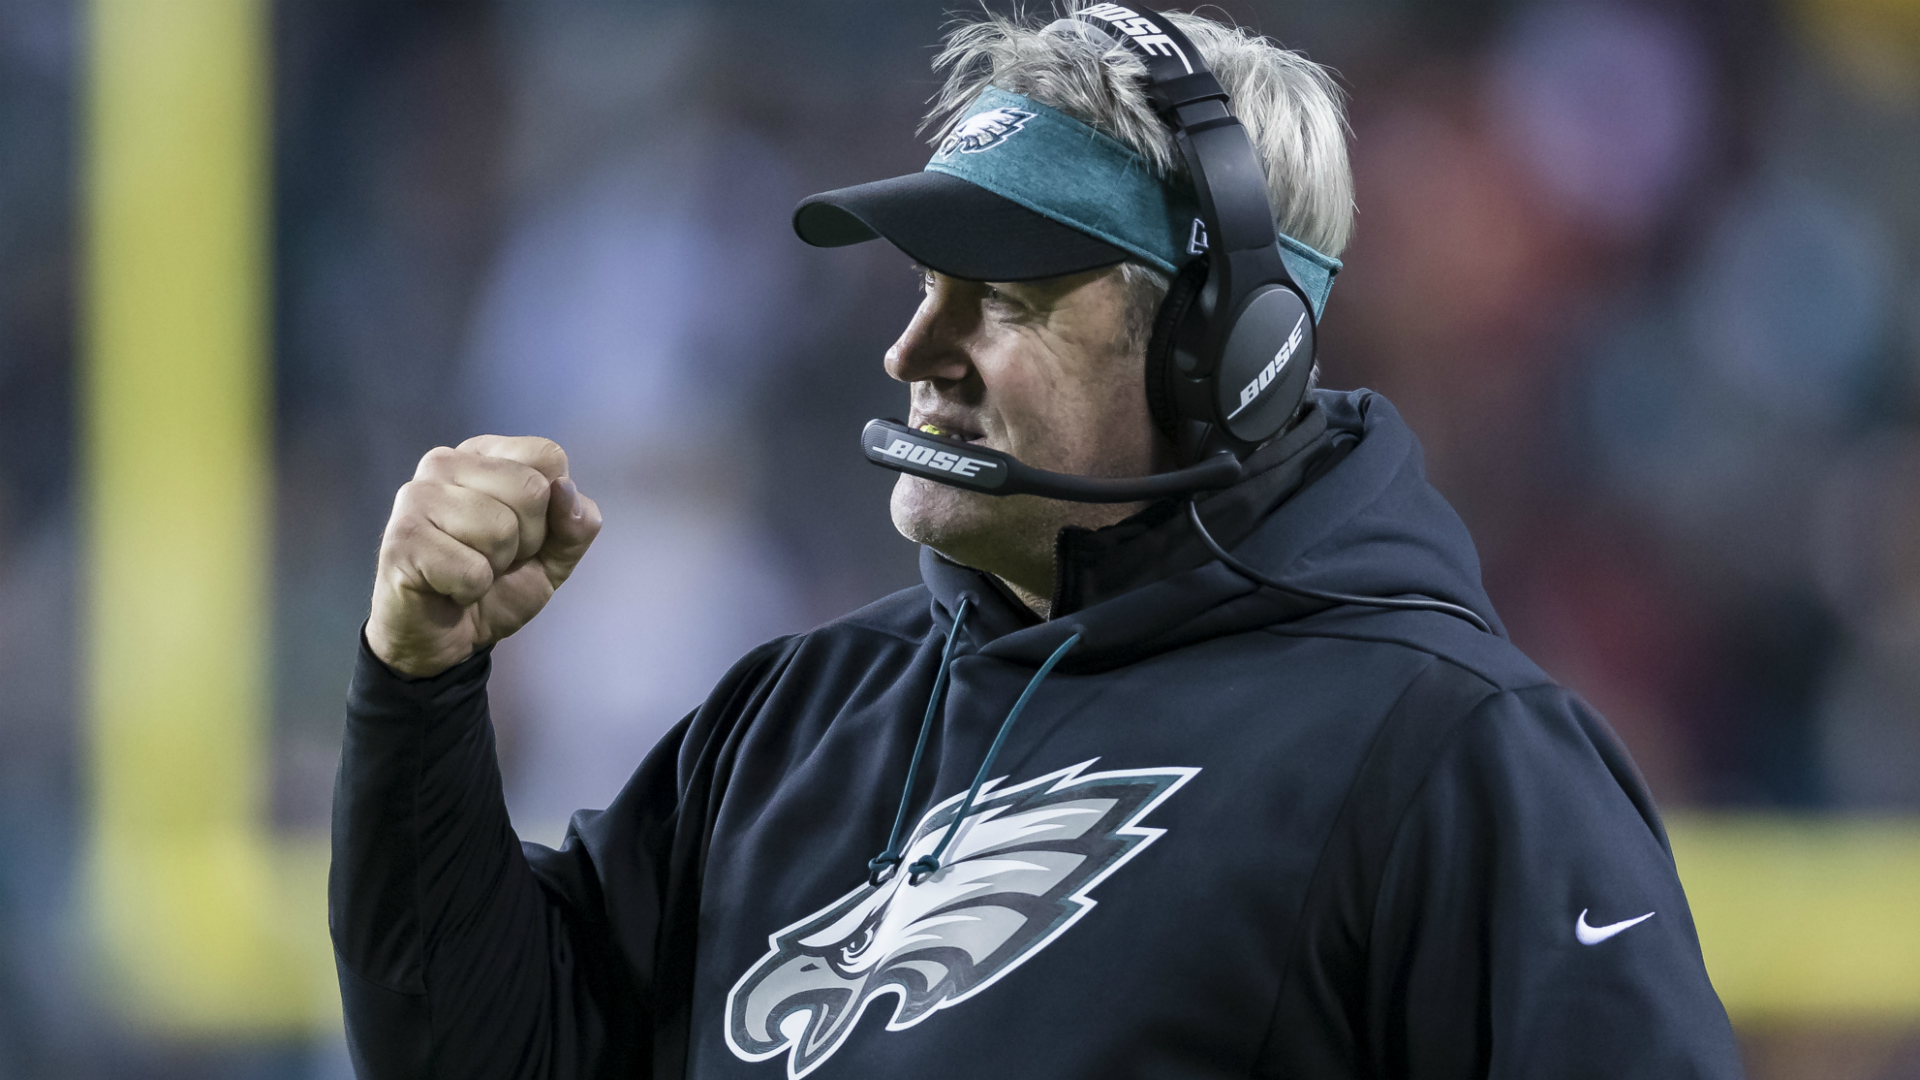 NFL playoffs 2019: Eagles coach Doug Pederson 'overwhelmed' after win over Bears